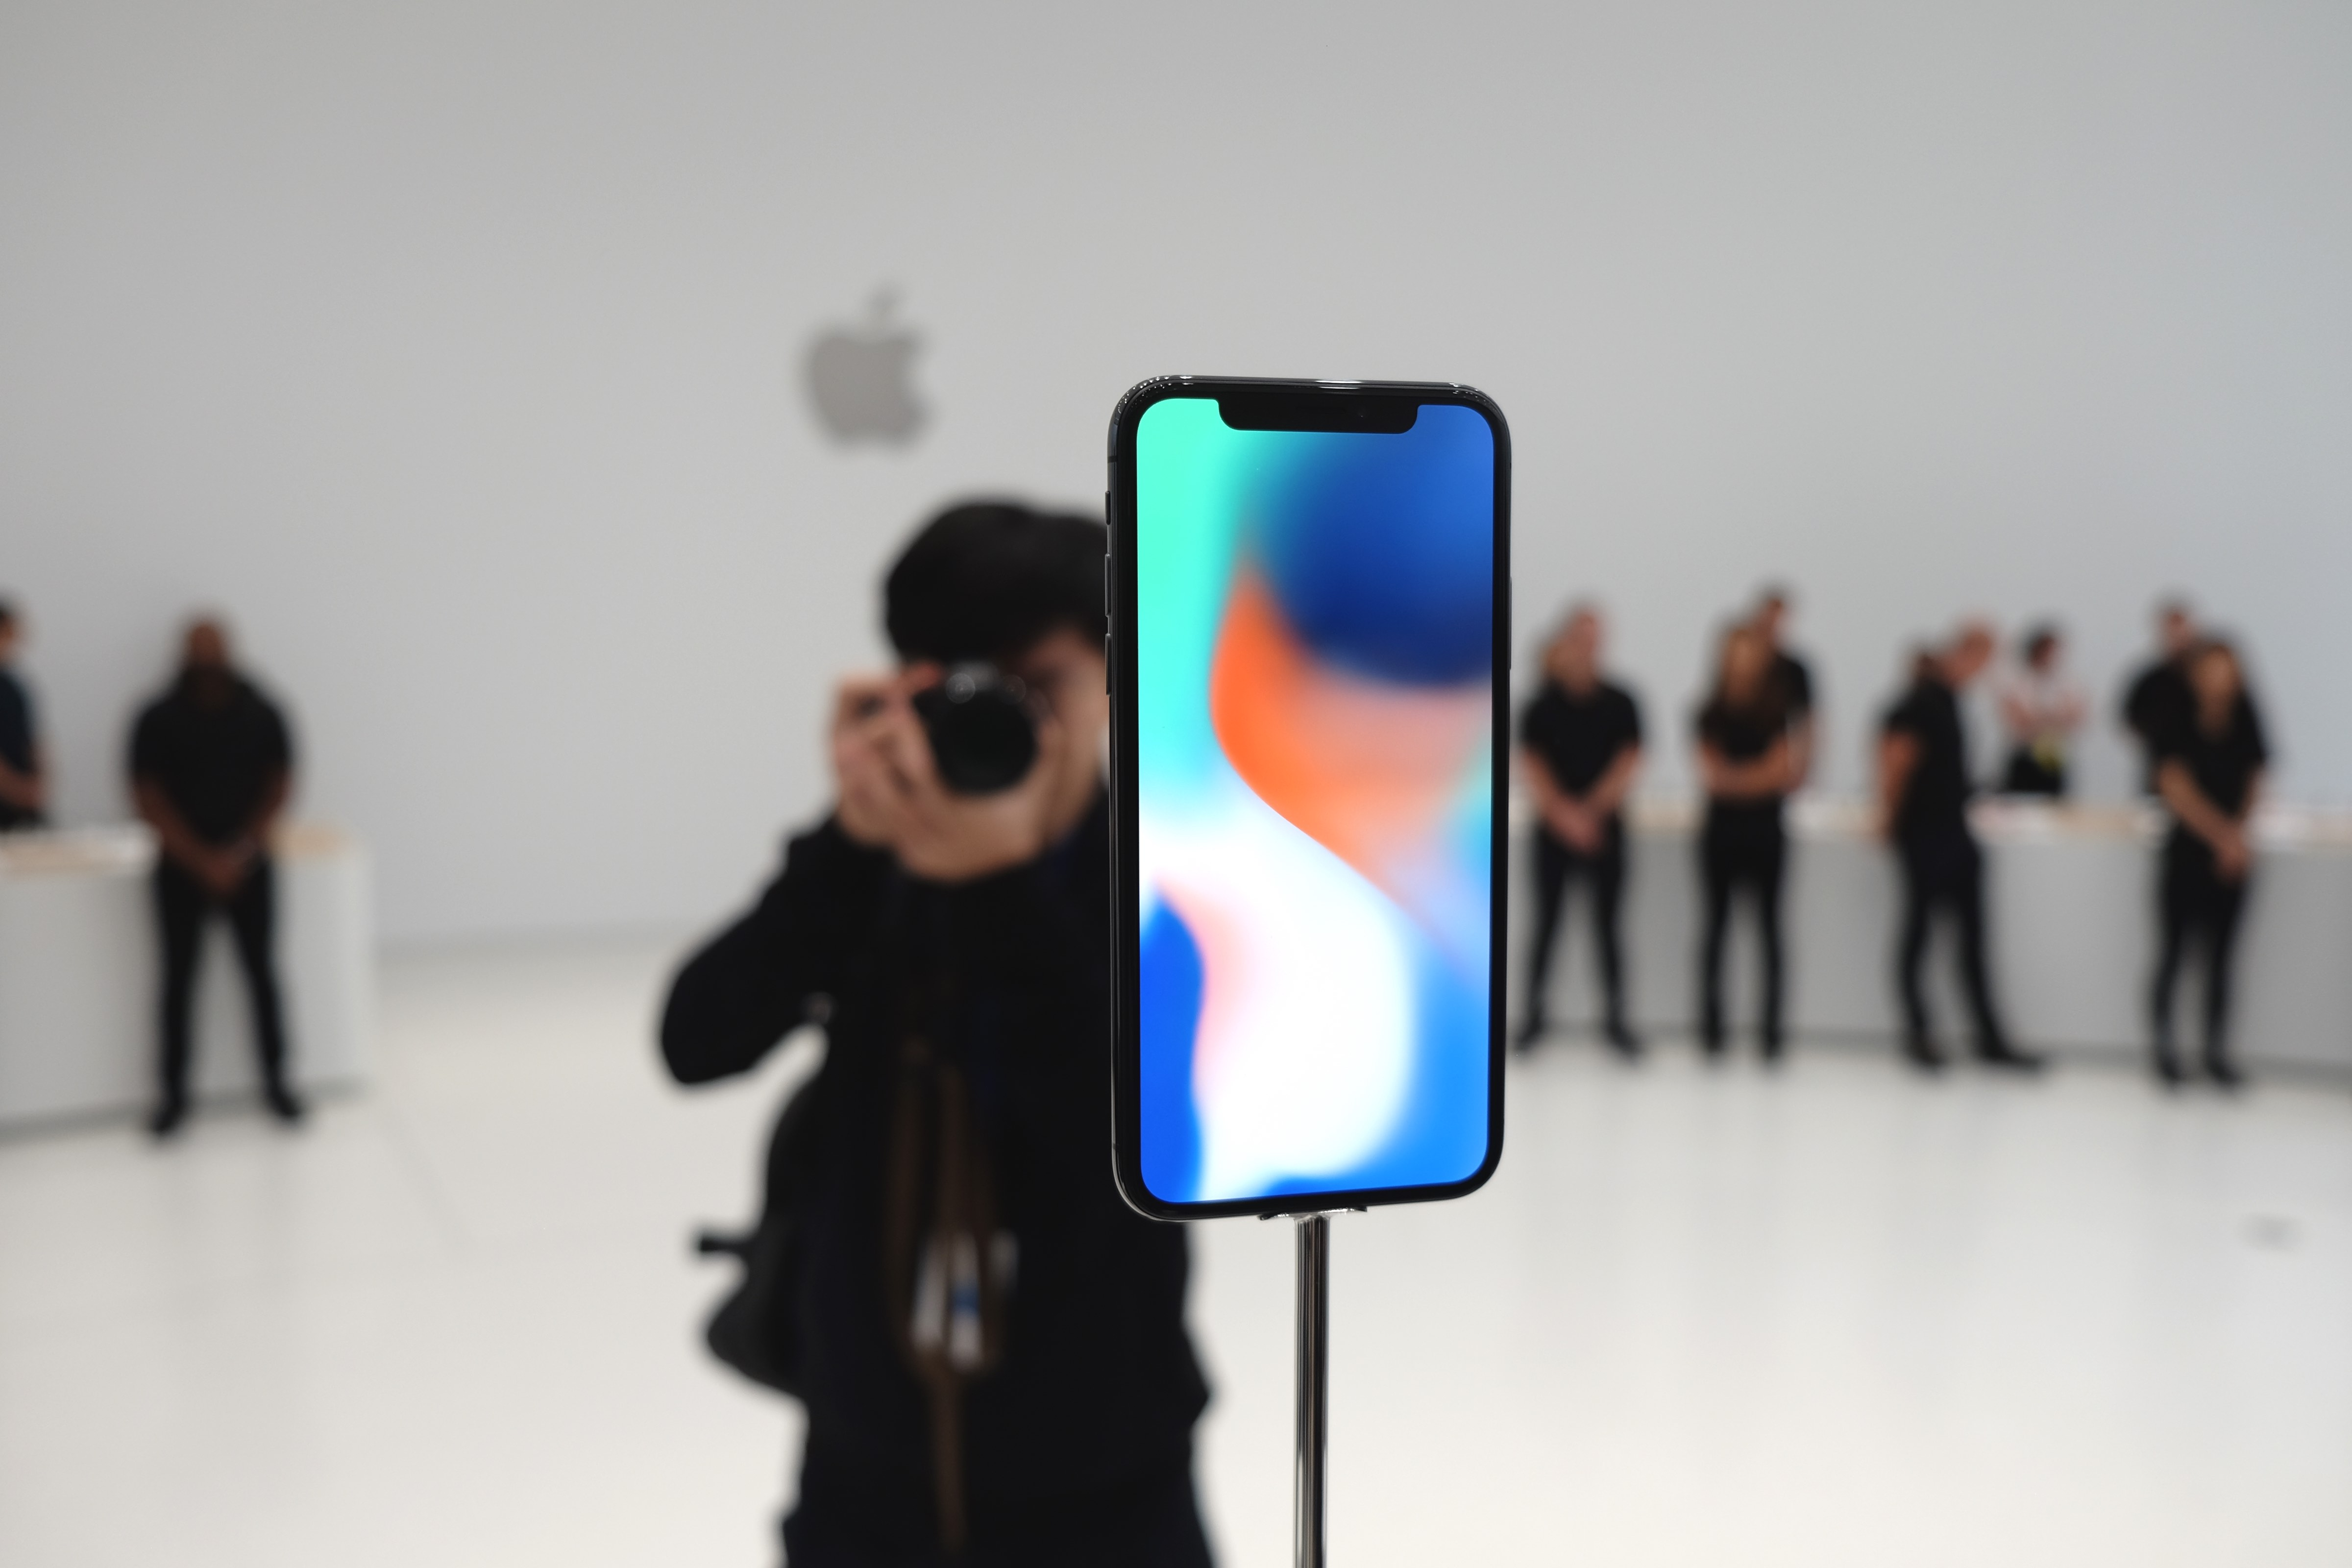 Should I pay $1,000 for the iPhone X?